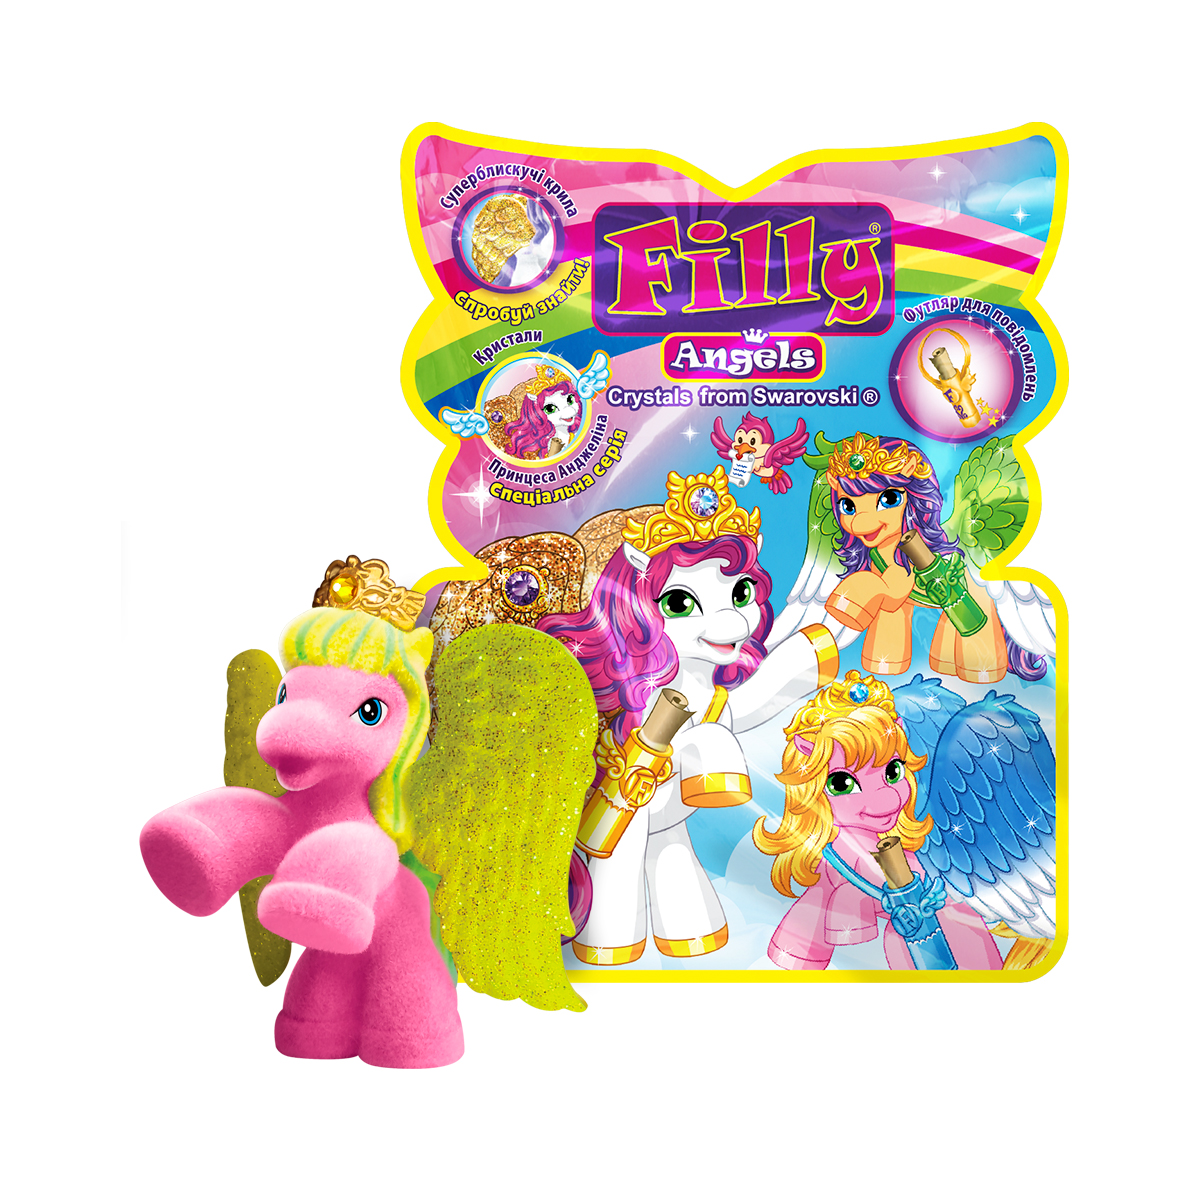 D189024-00 Figurina Filly seria Angels